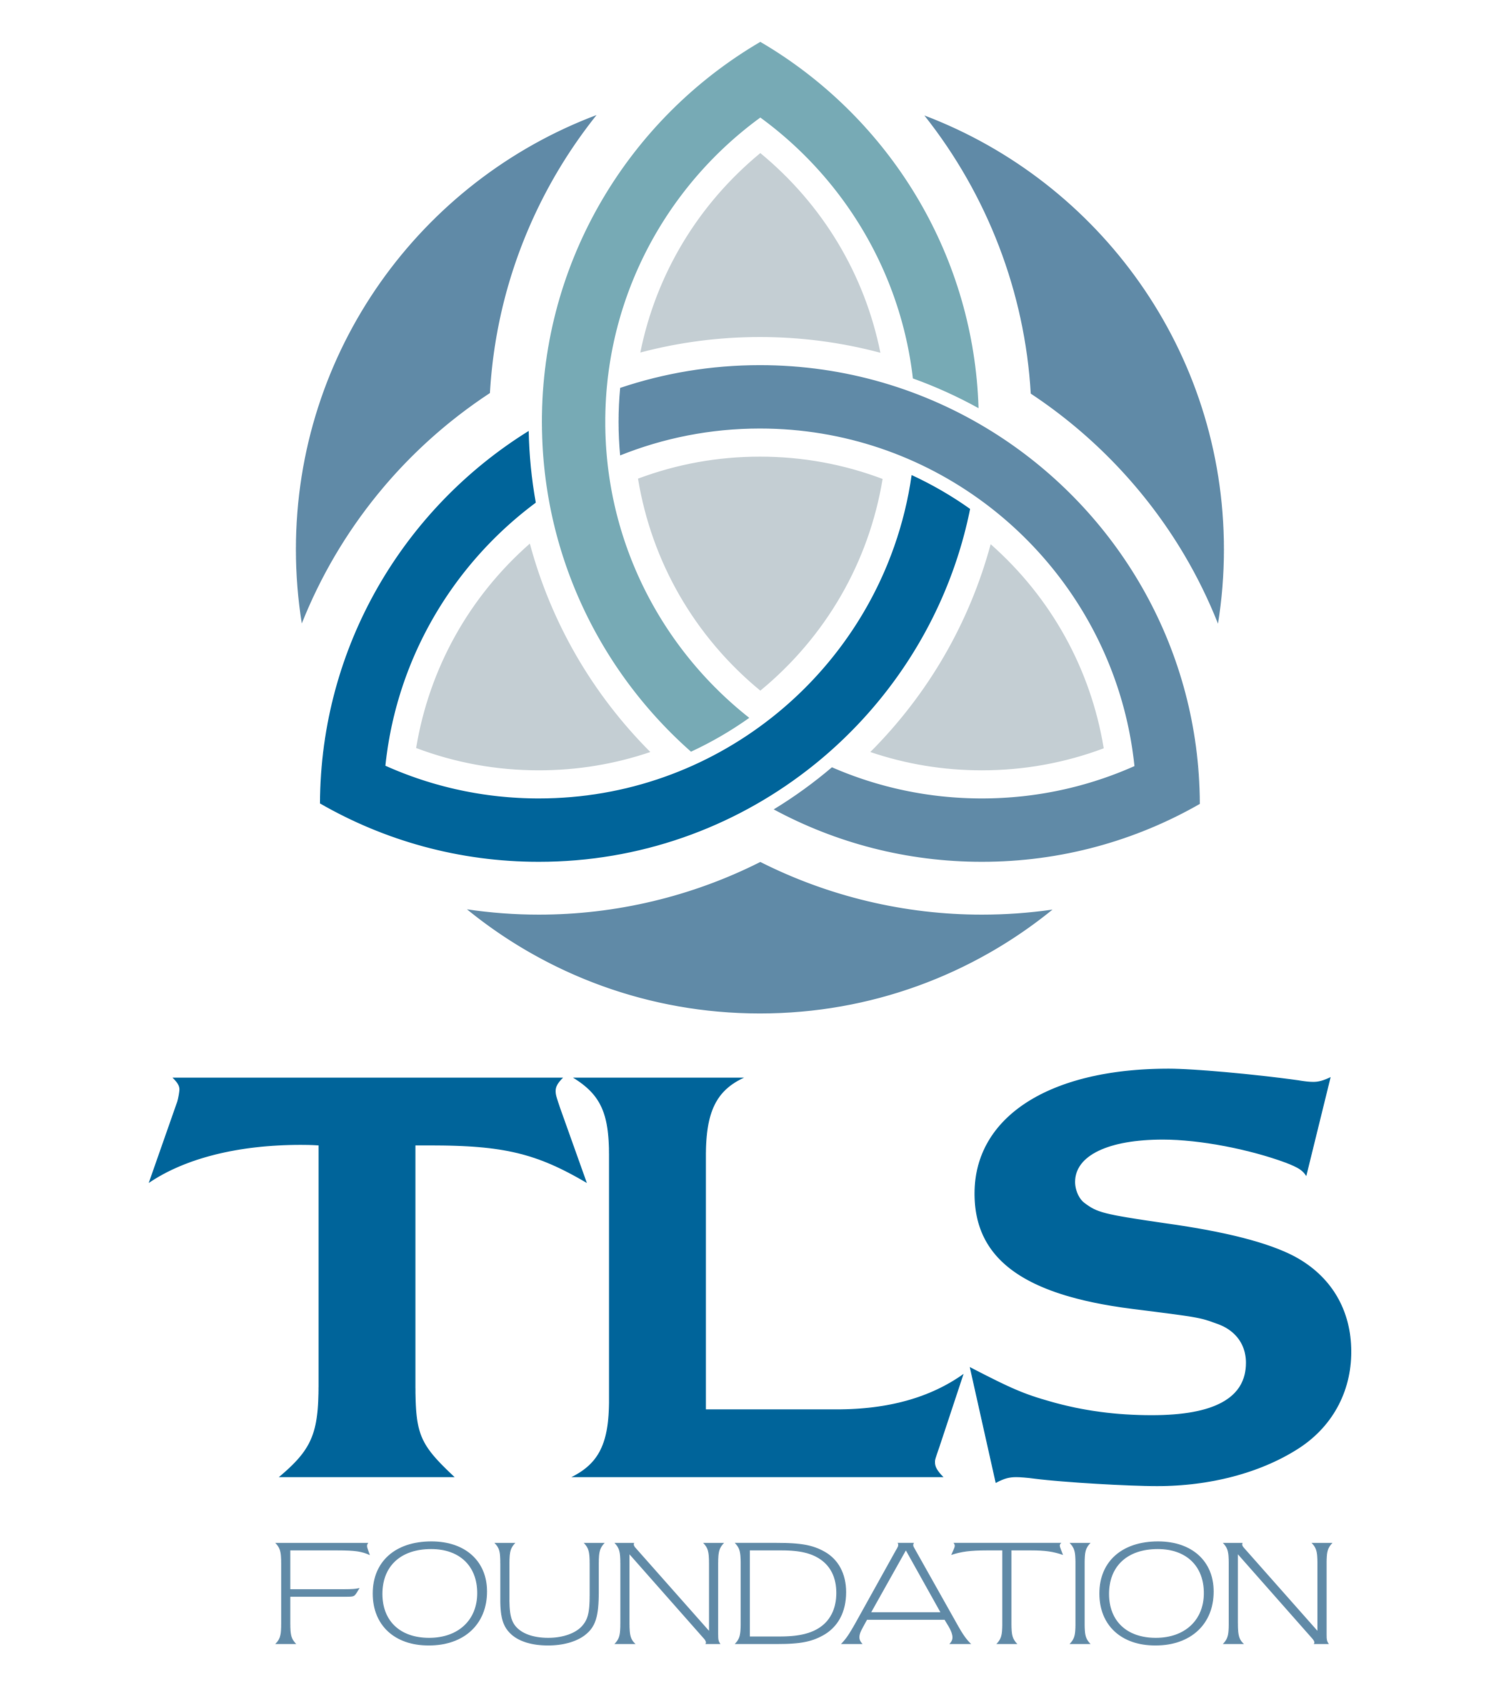 Trinity Lutheran School Foundation